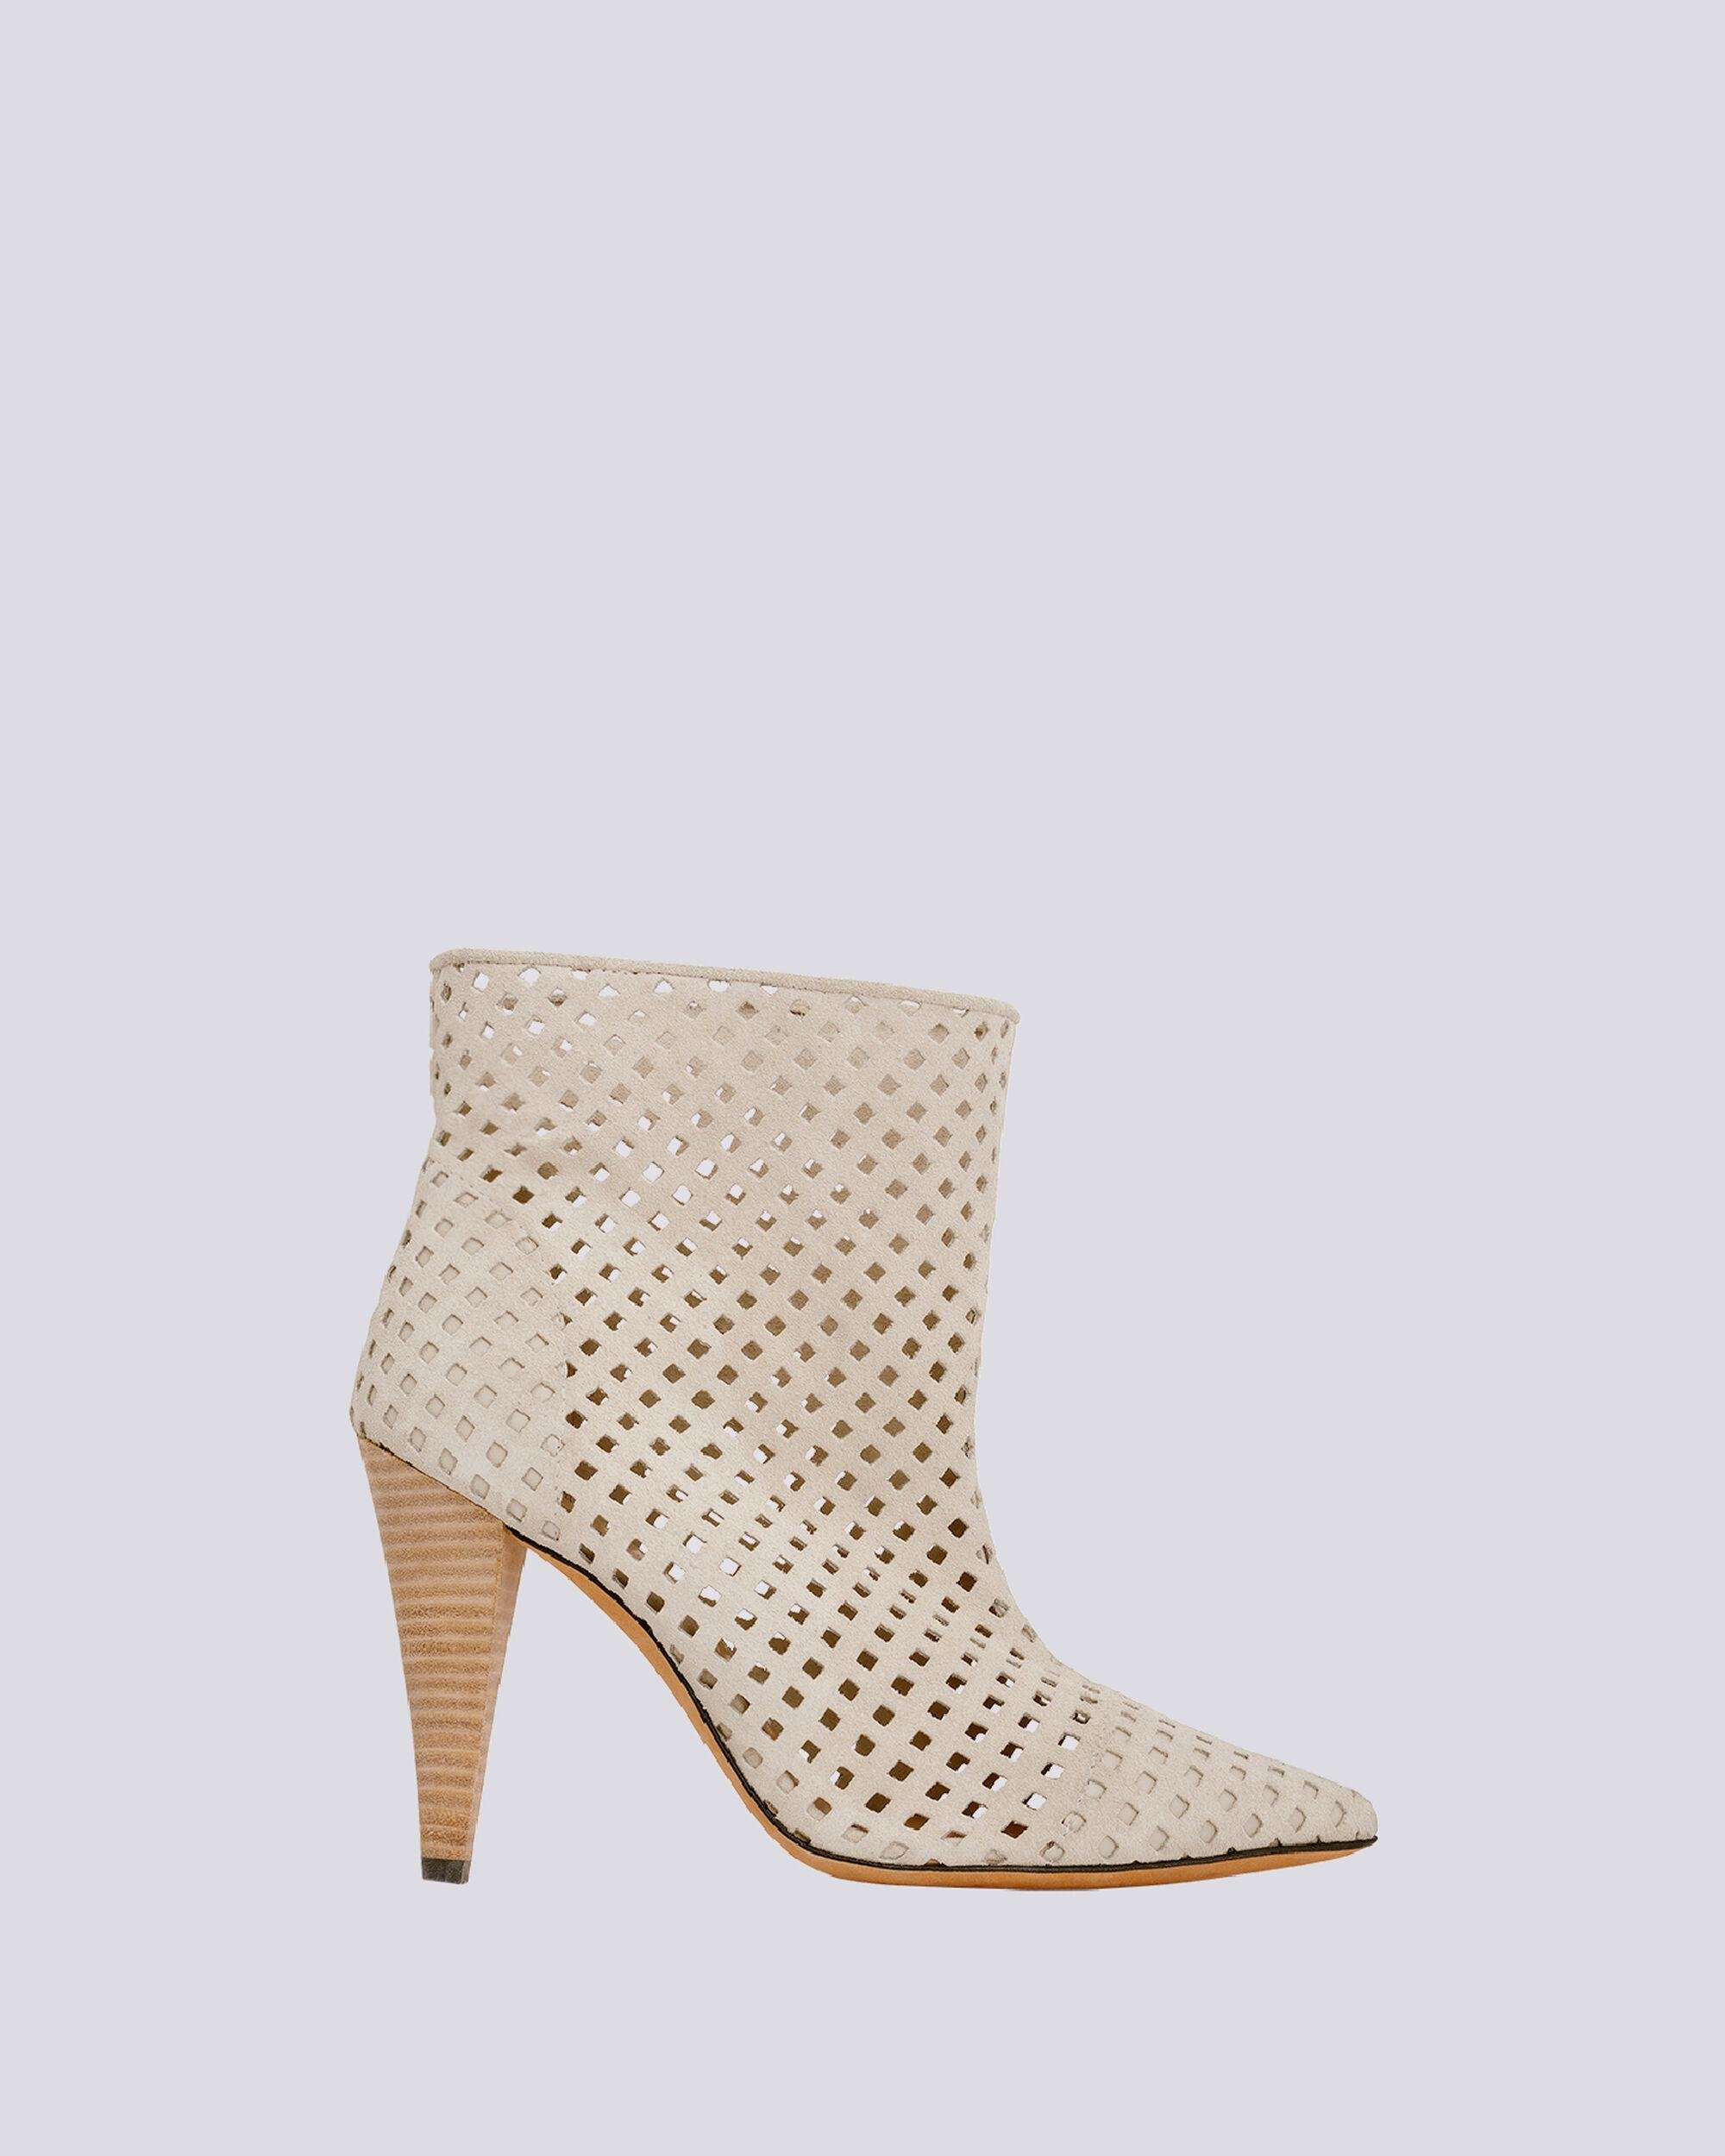 HIRSON PERFORATED SUEDE ANKLE BOOTS